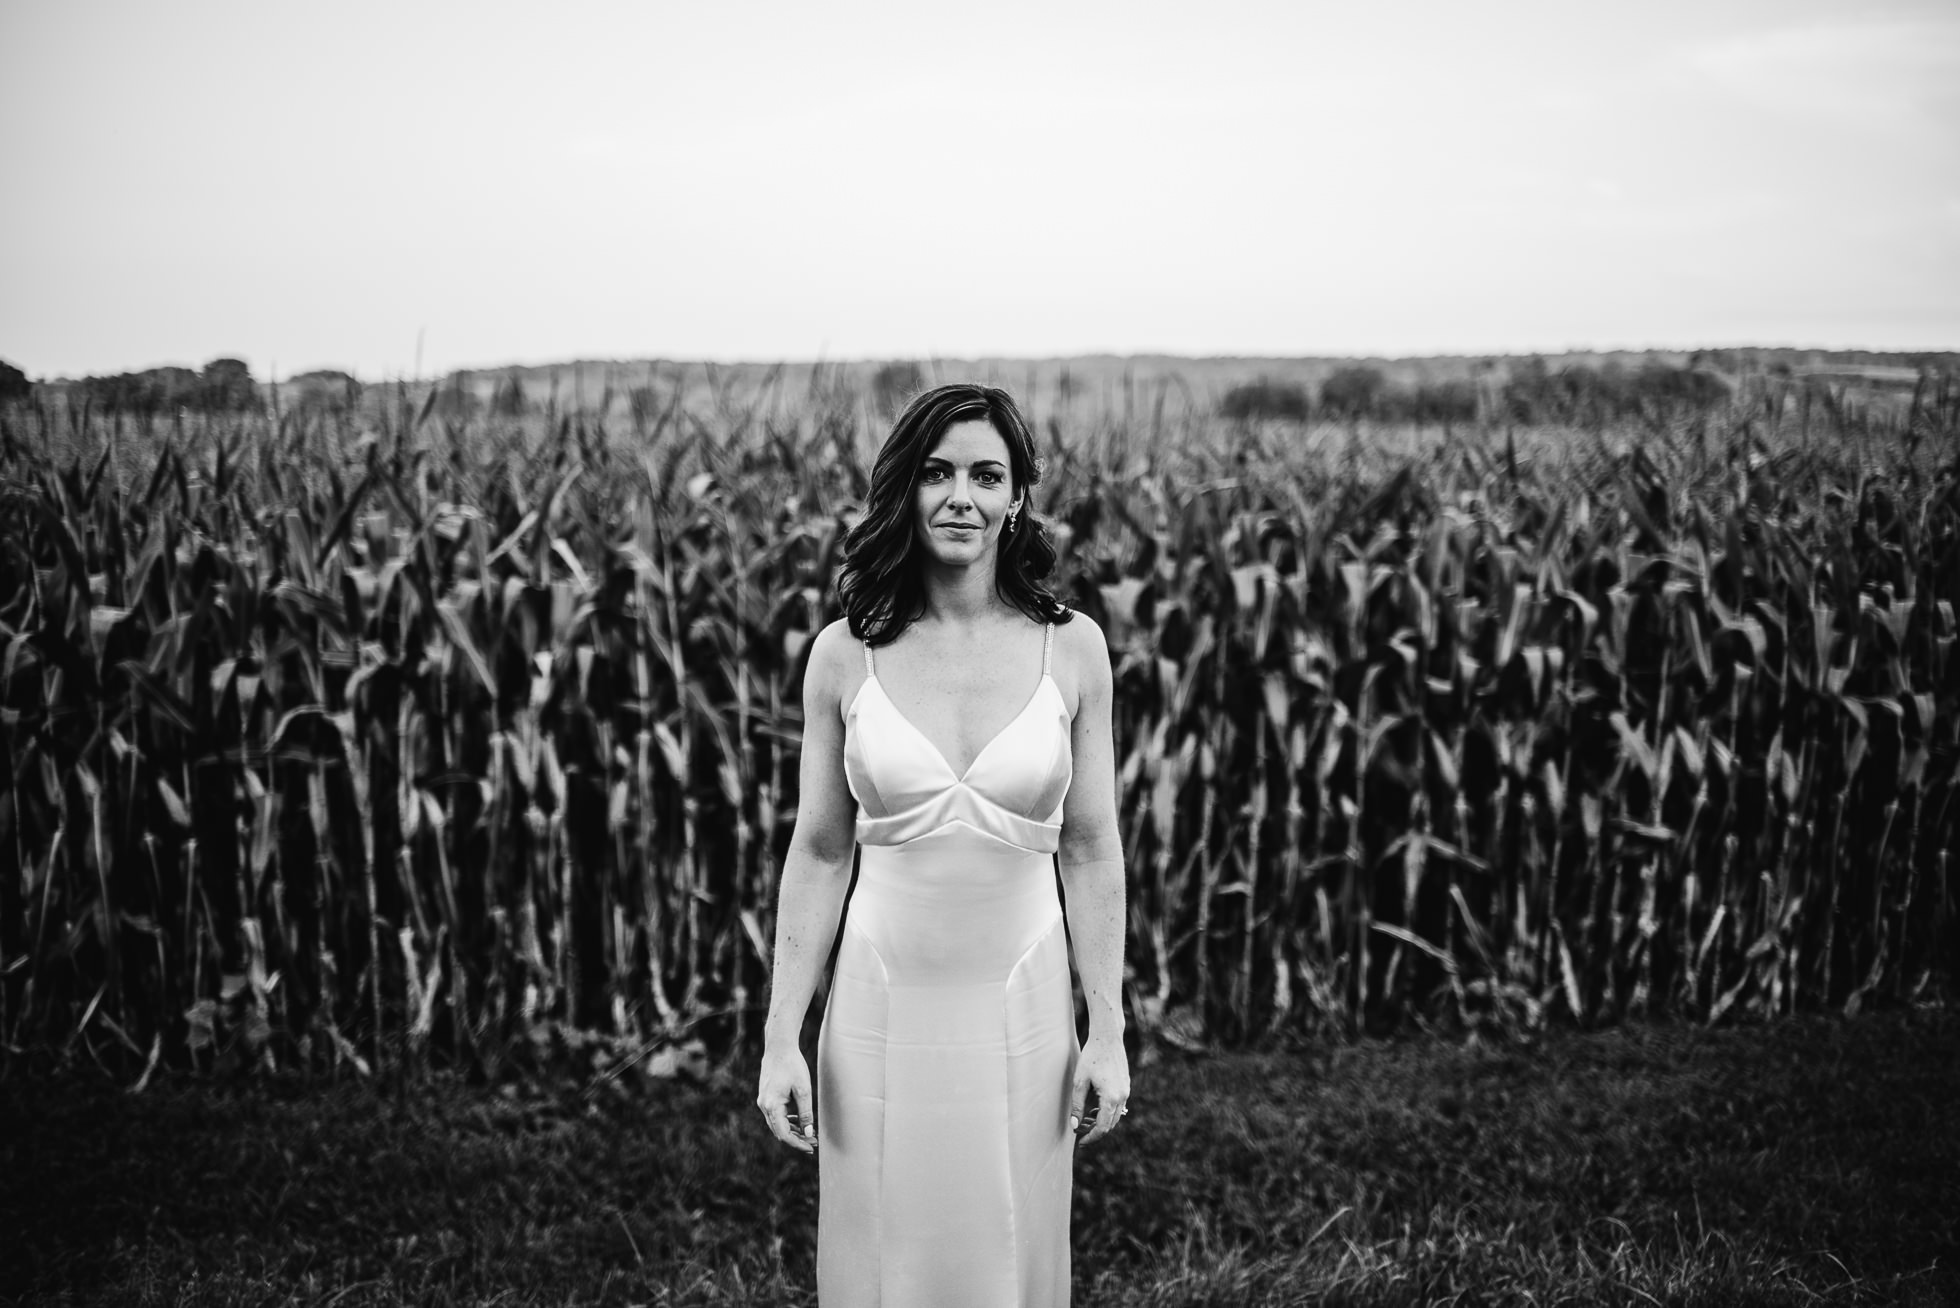 bride portrait near corn field at olde tater barn wedding in central bridge, ny photographed by traverse the tides